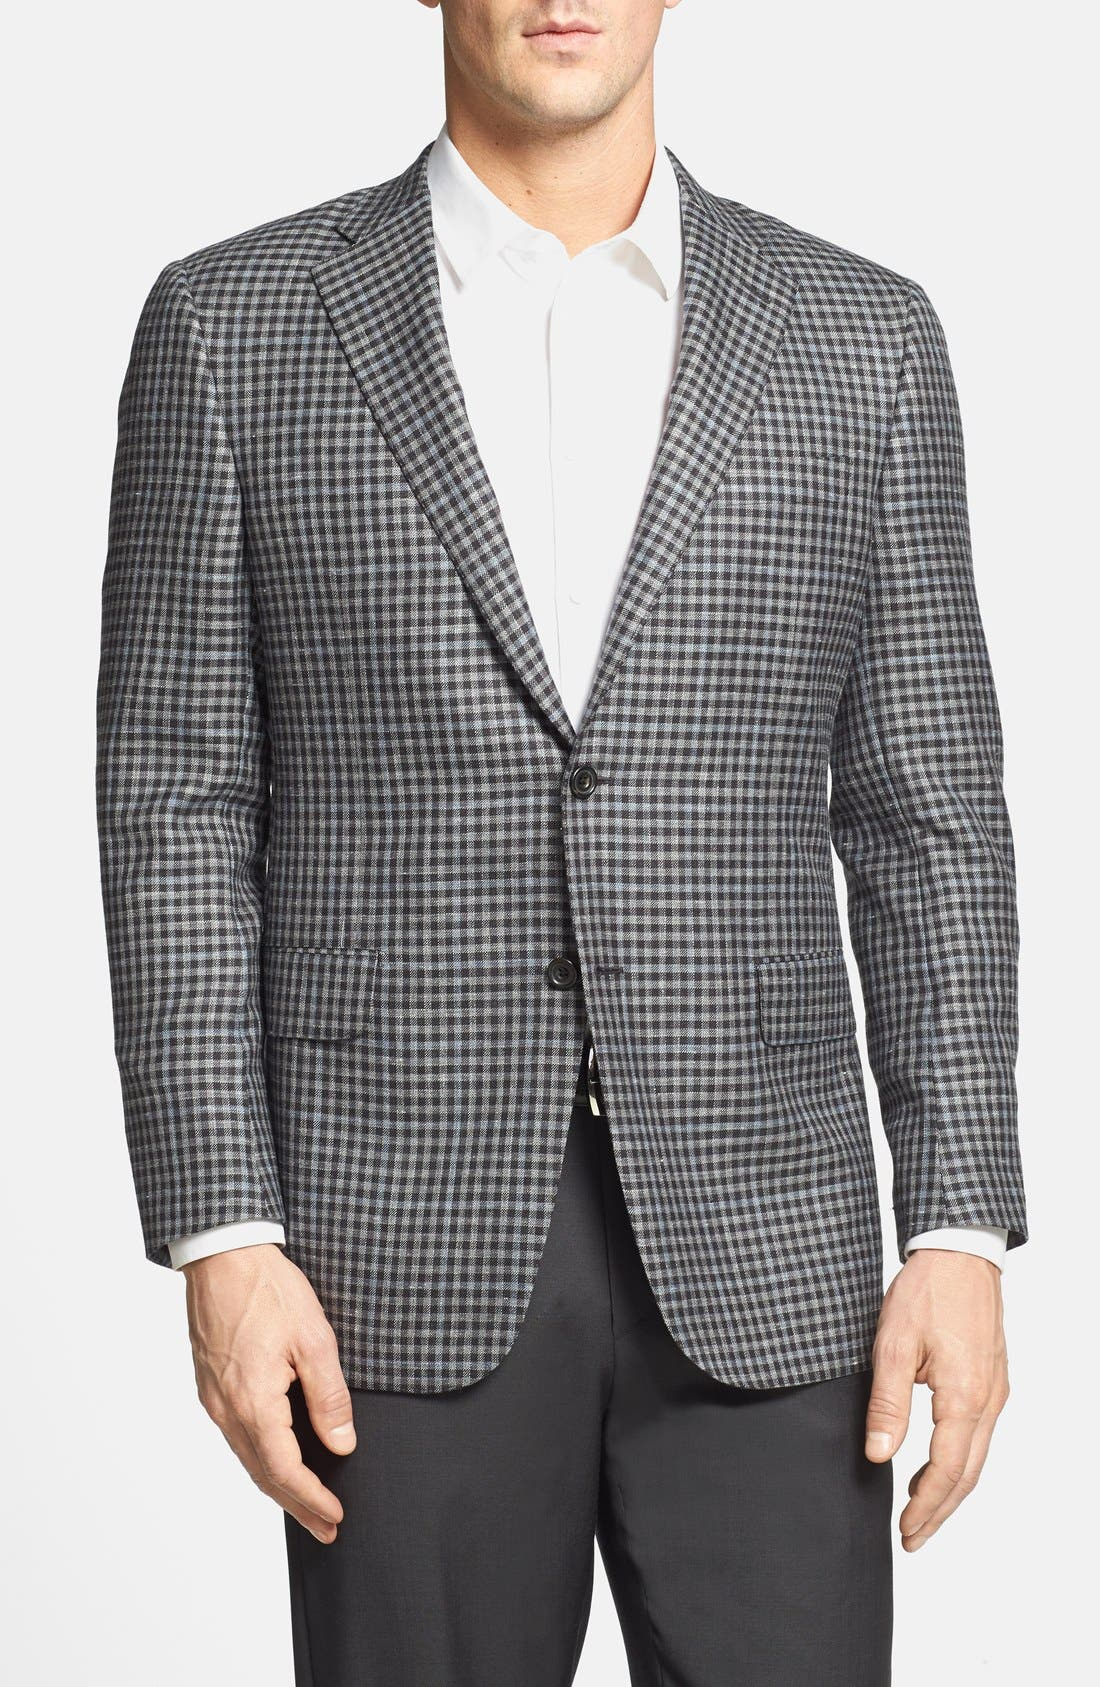 Alternate Image 1 Selected - Hickey Freeman 'Beacon' Classic Fit Wool Blend Sportcoat